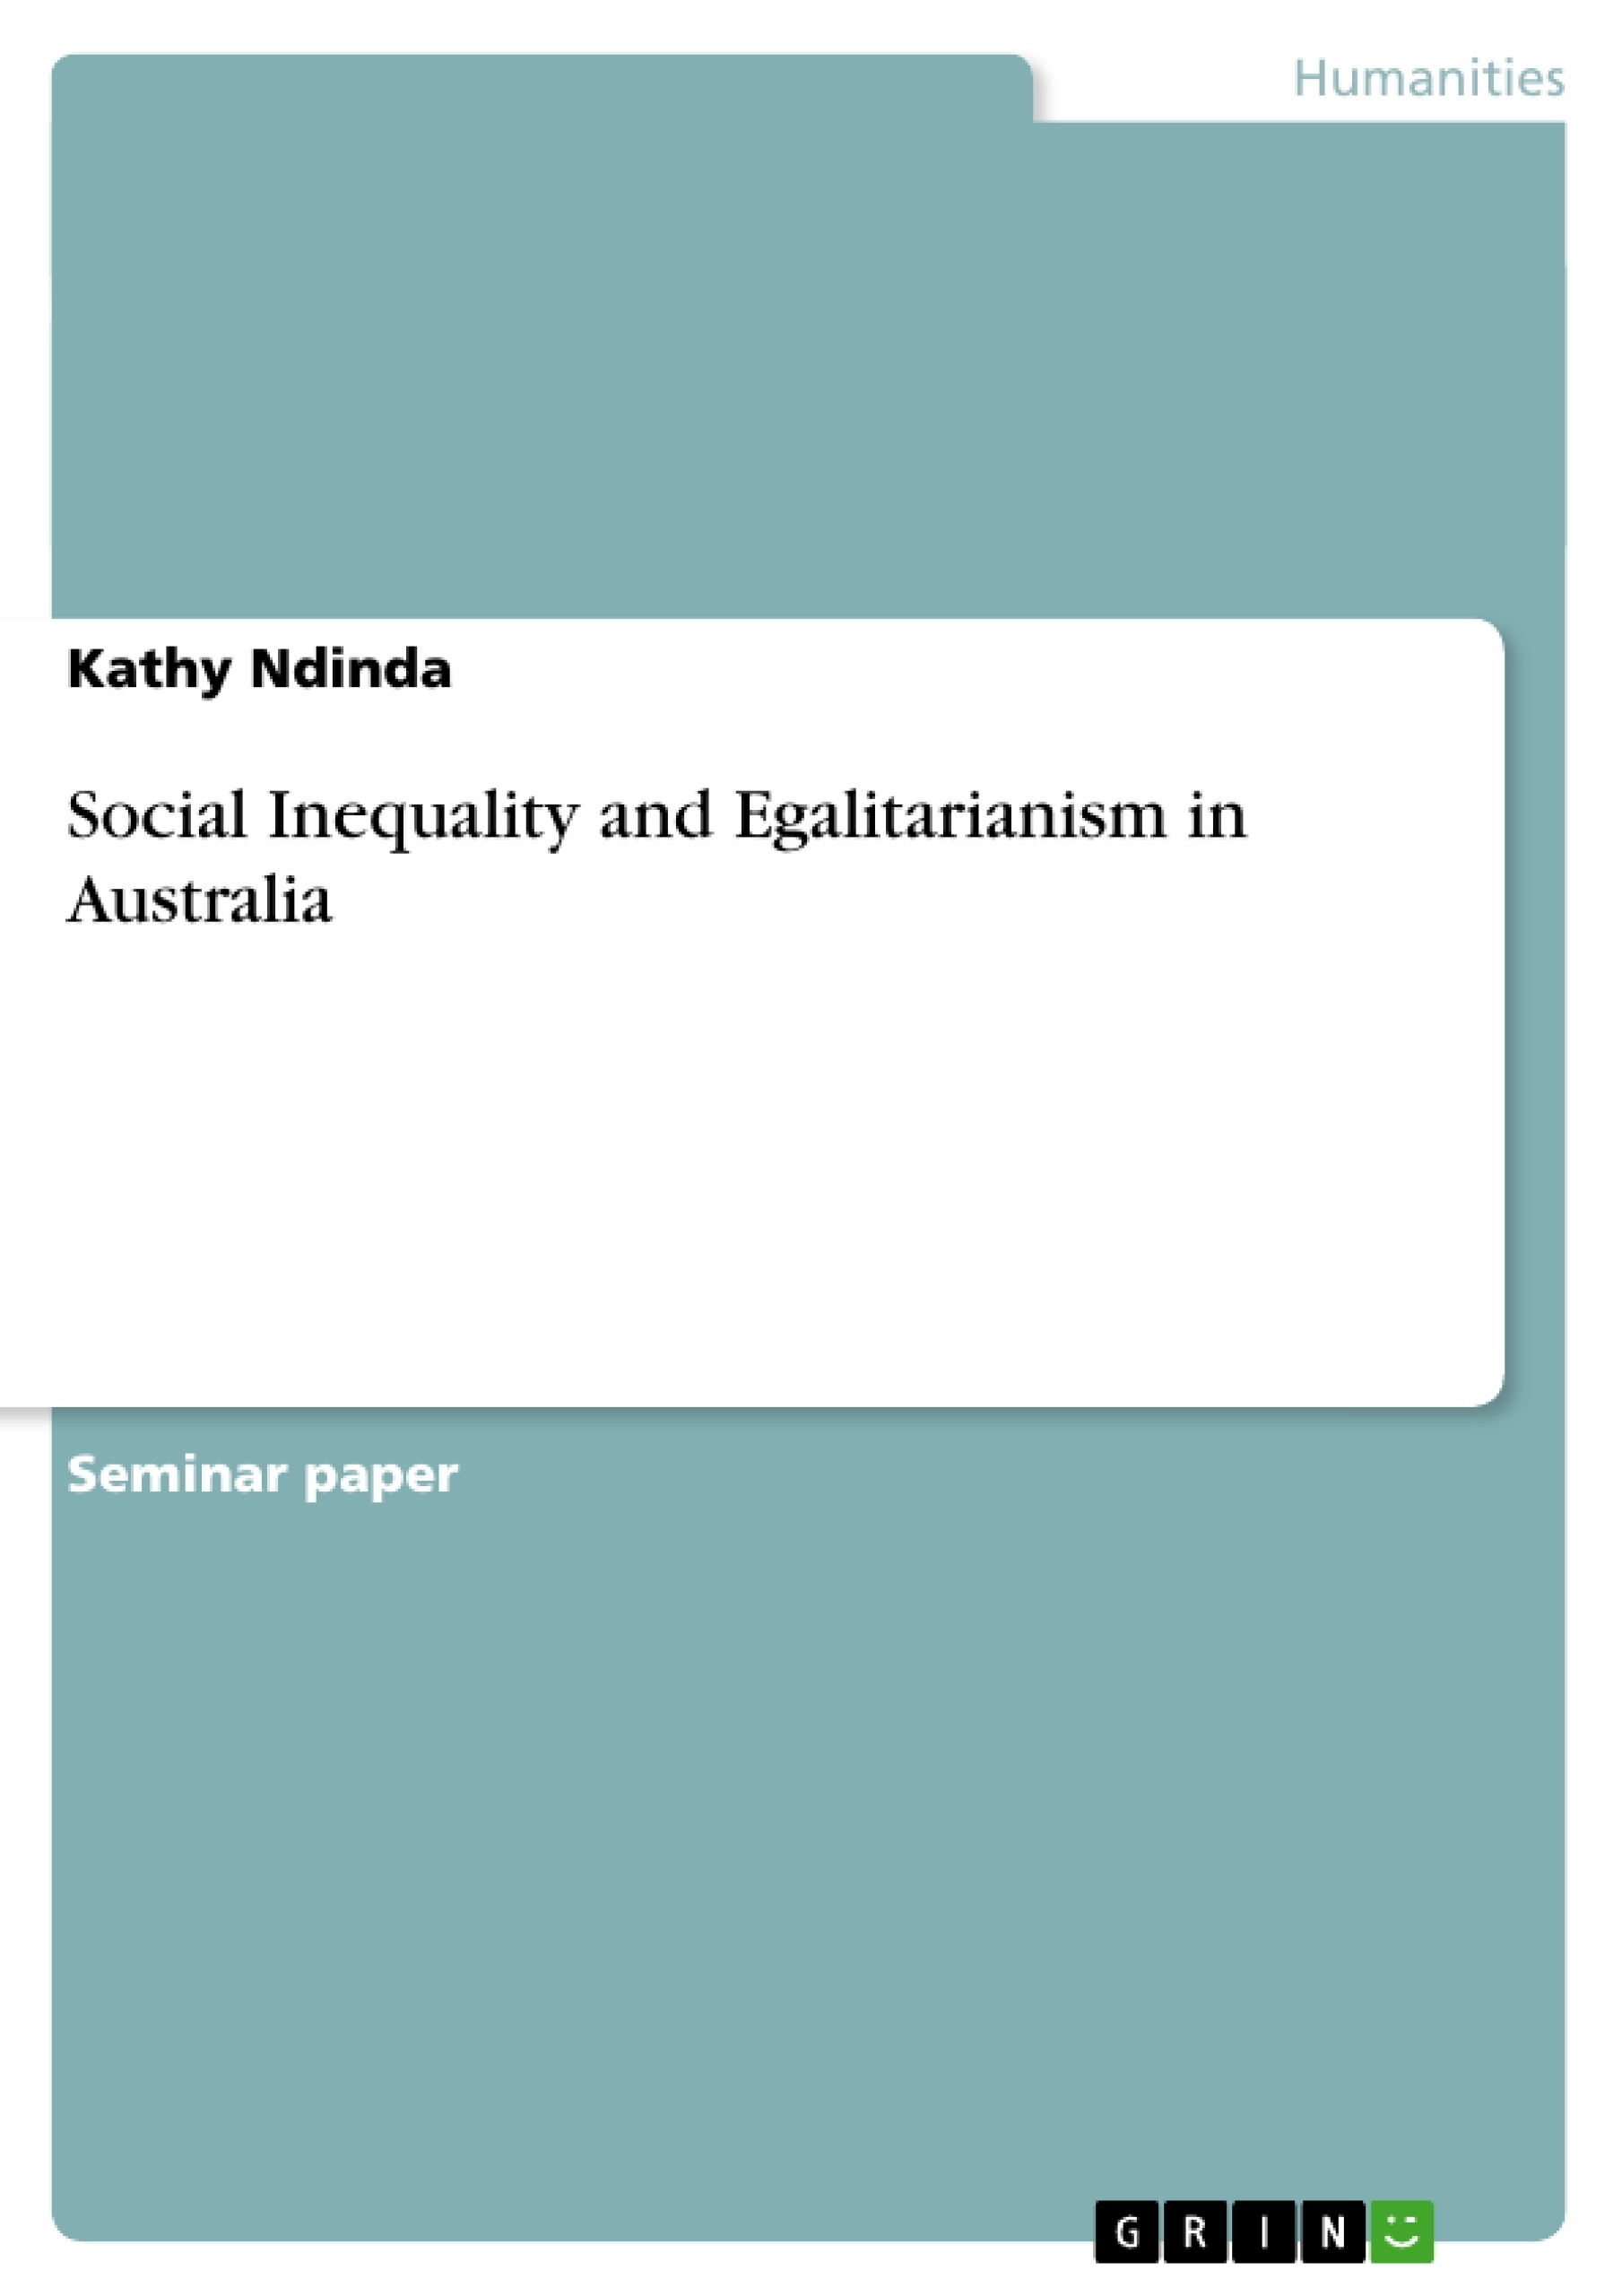 Title: Social Inequality and Egalitarianism in Australia